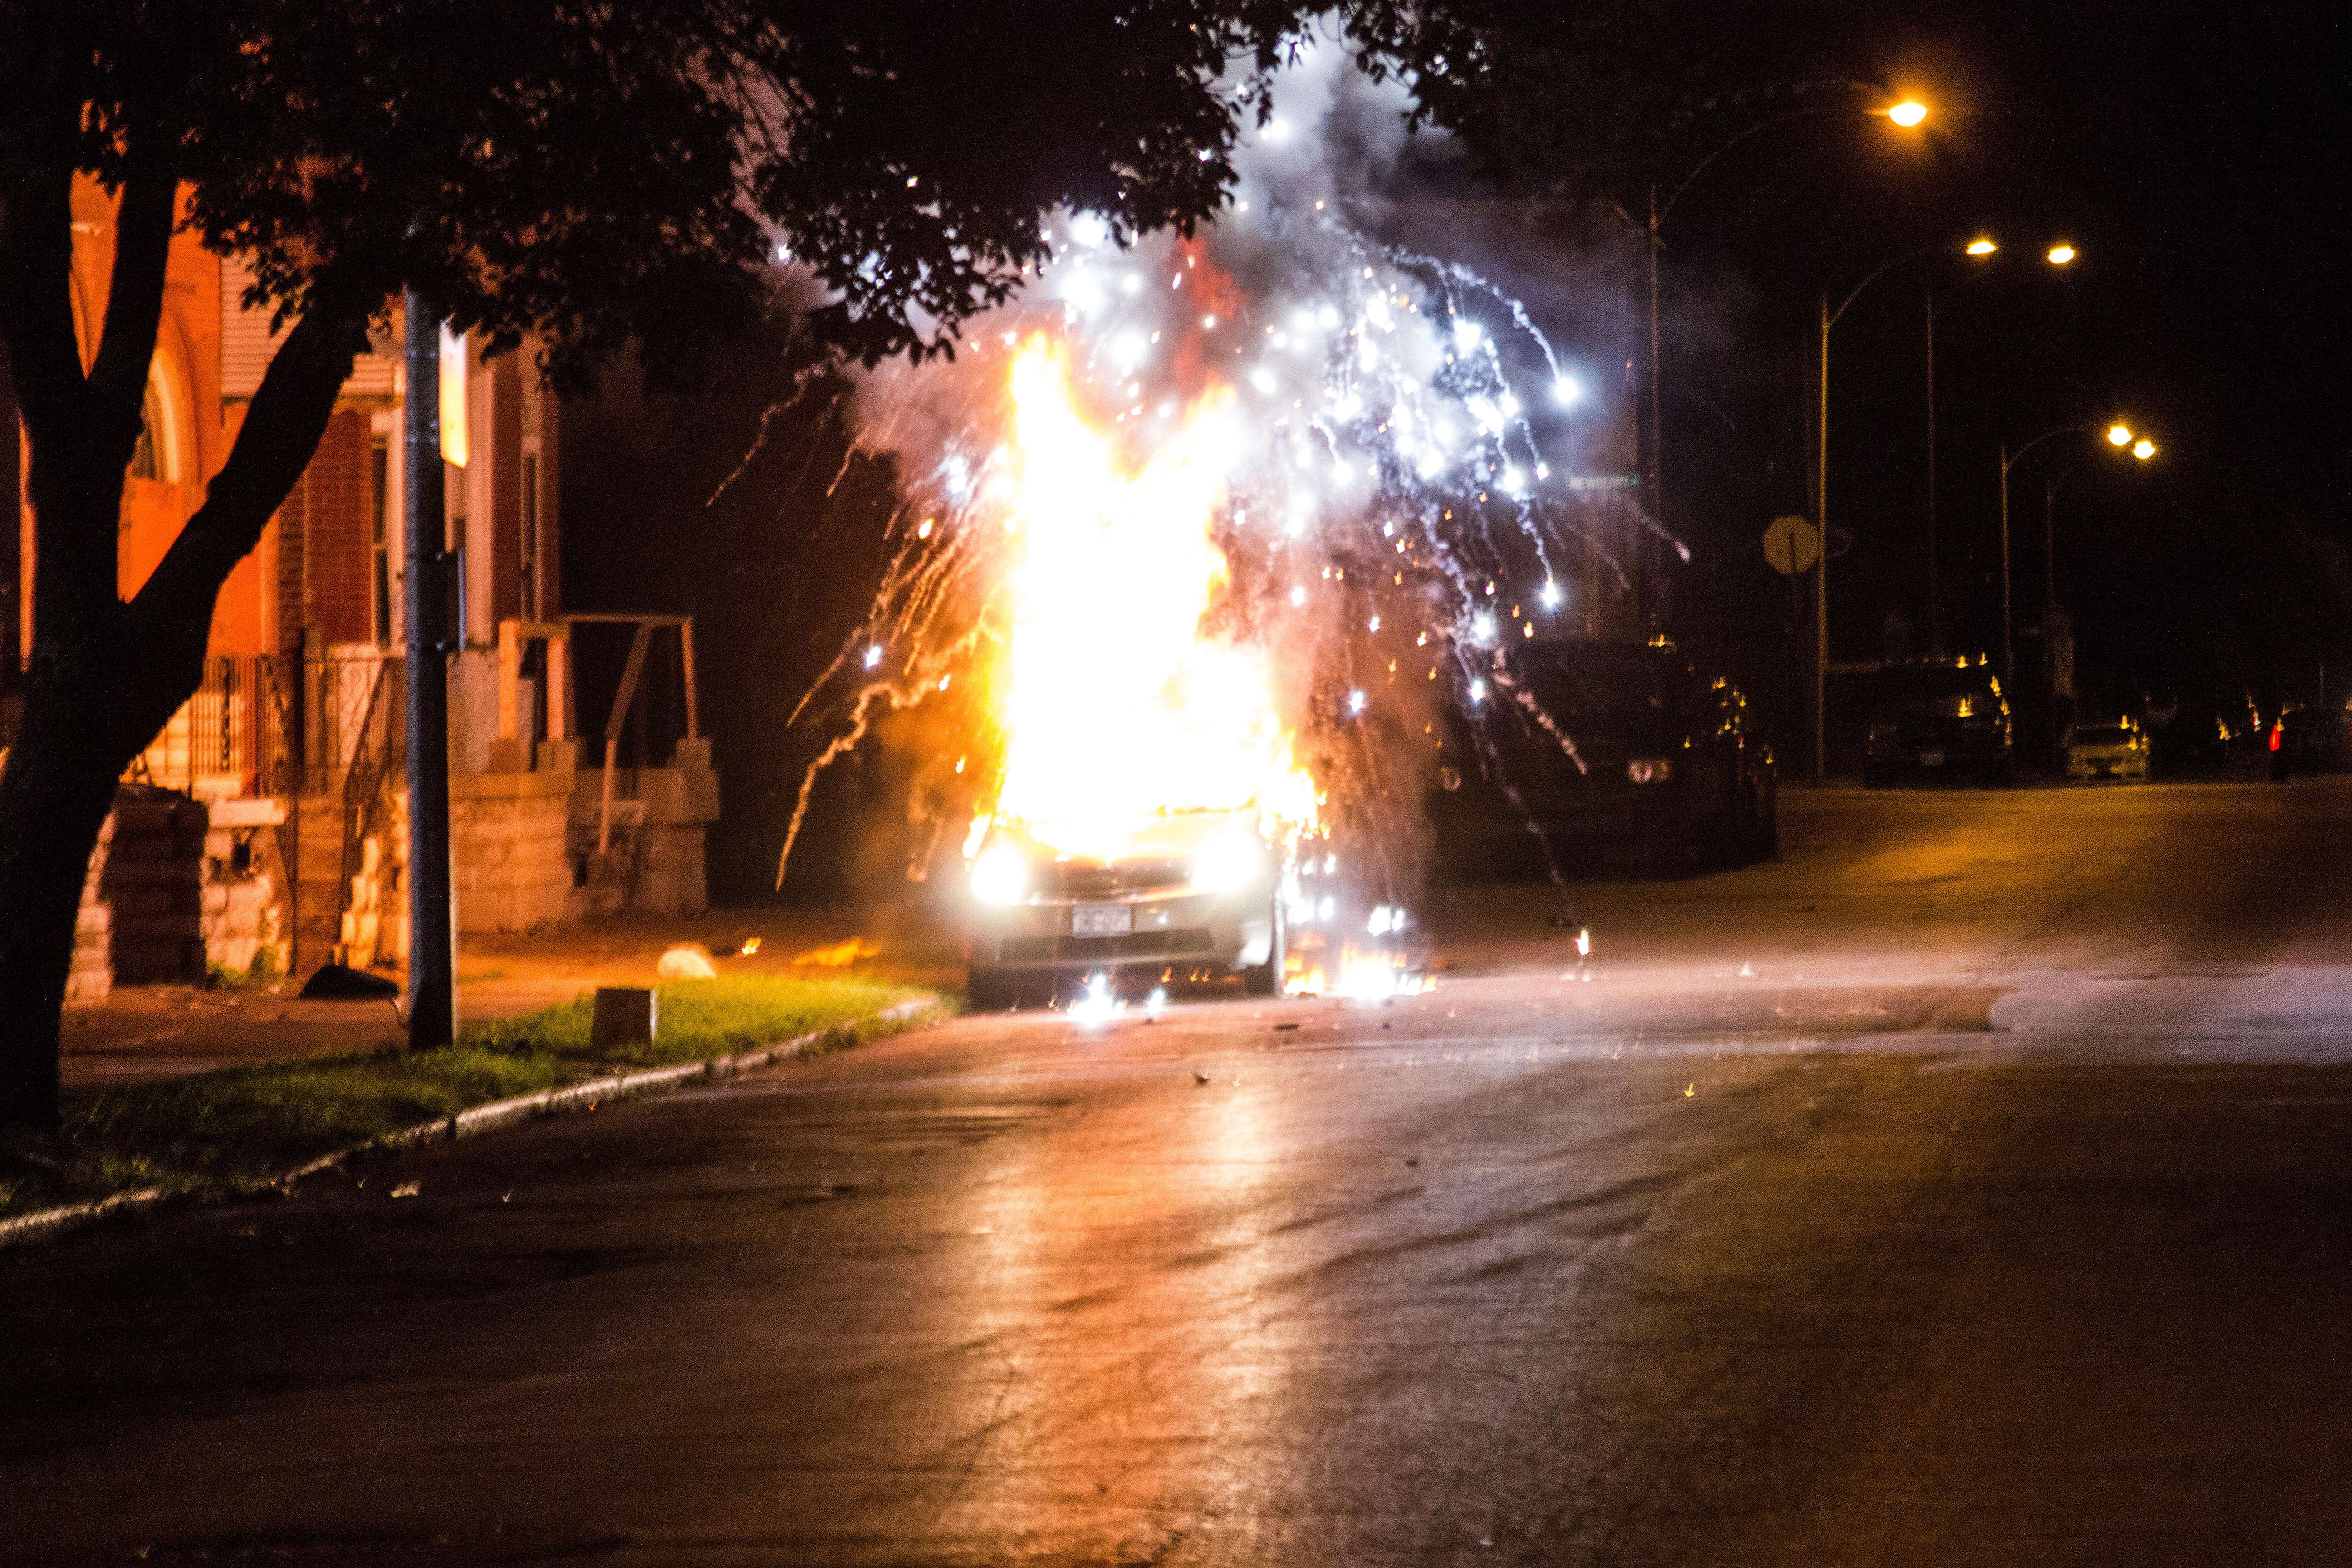 A Prius explodes after being set on fire during a protest in the Fountain Park neighborhood